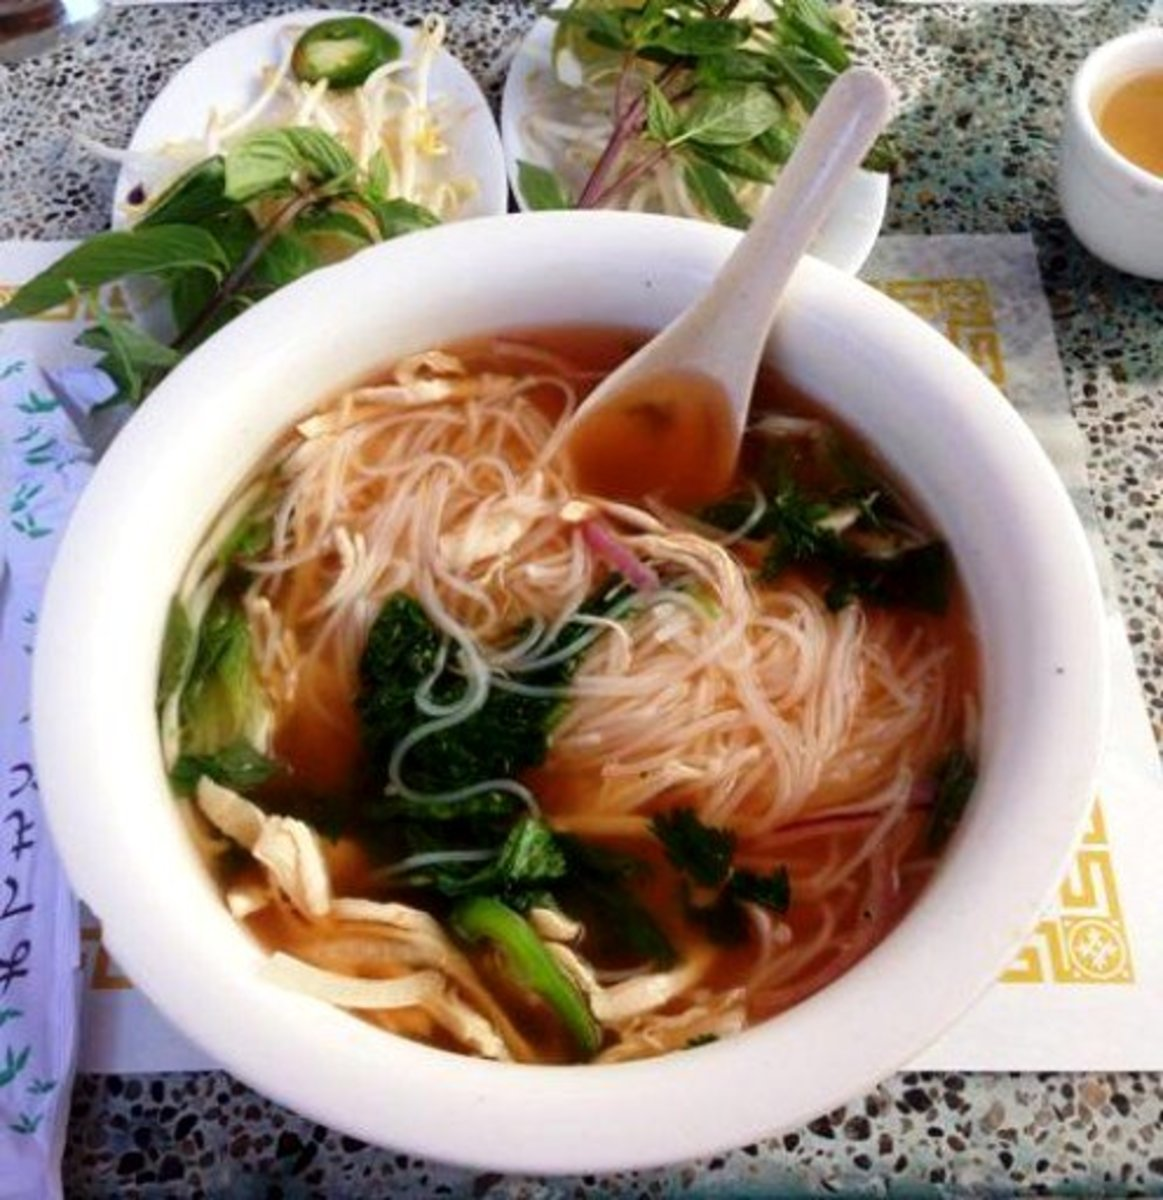 Hand-pulled noodles are often served with a beef or mutton soup.